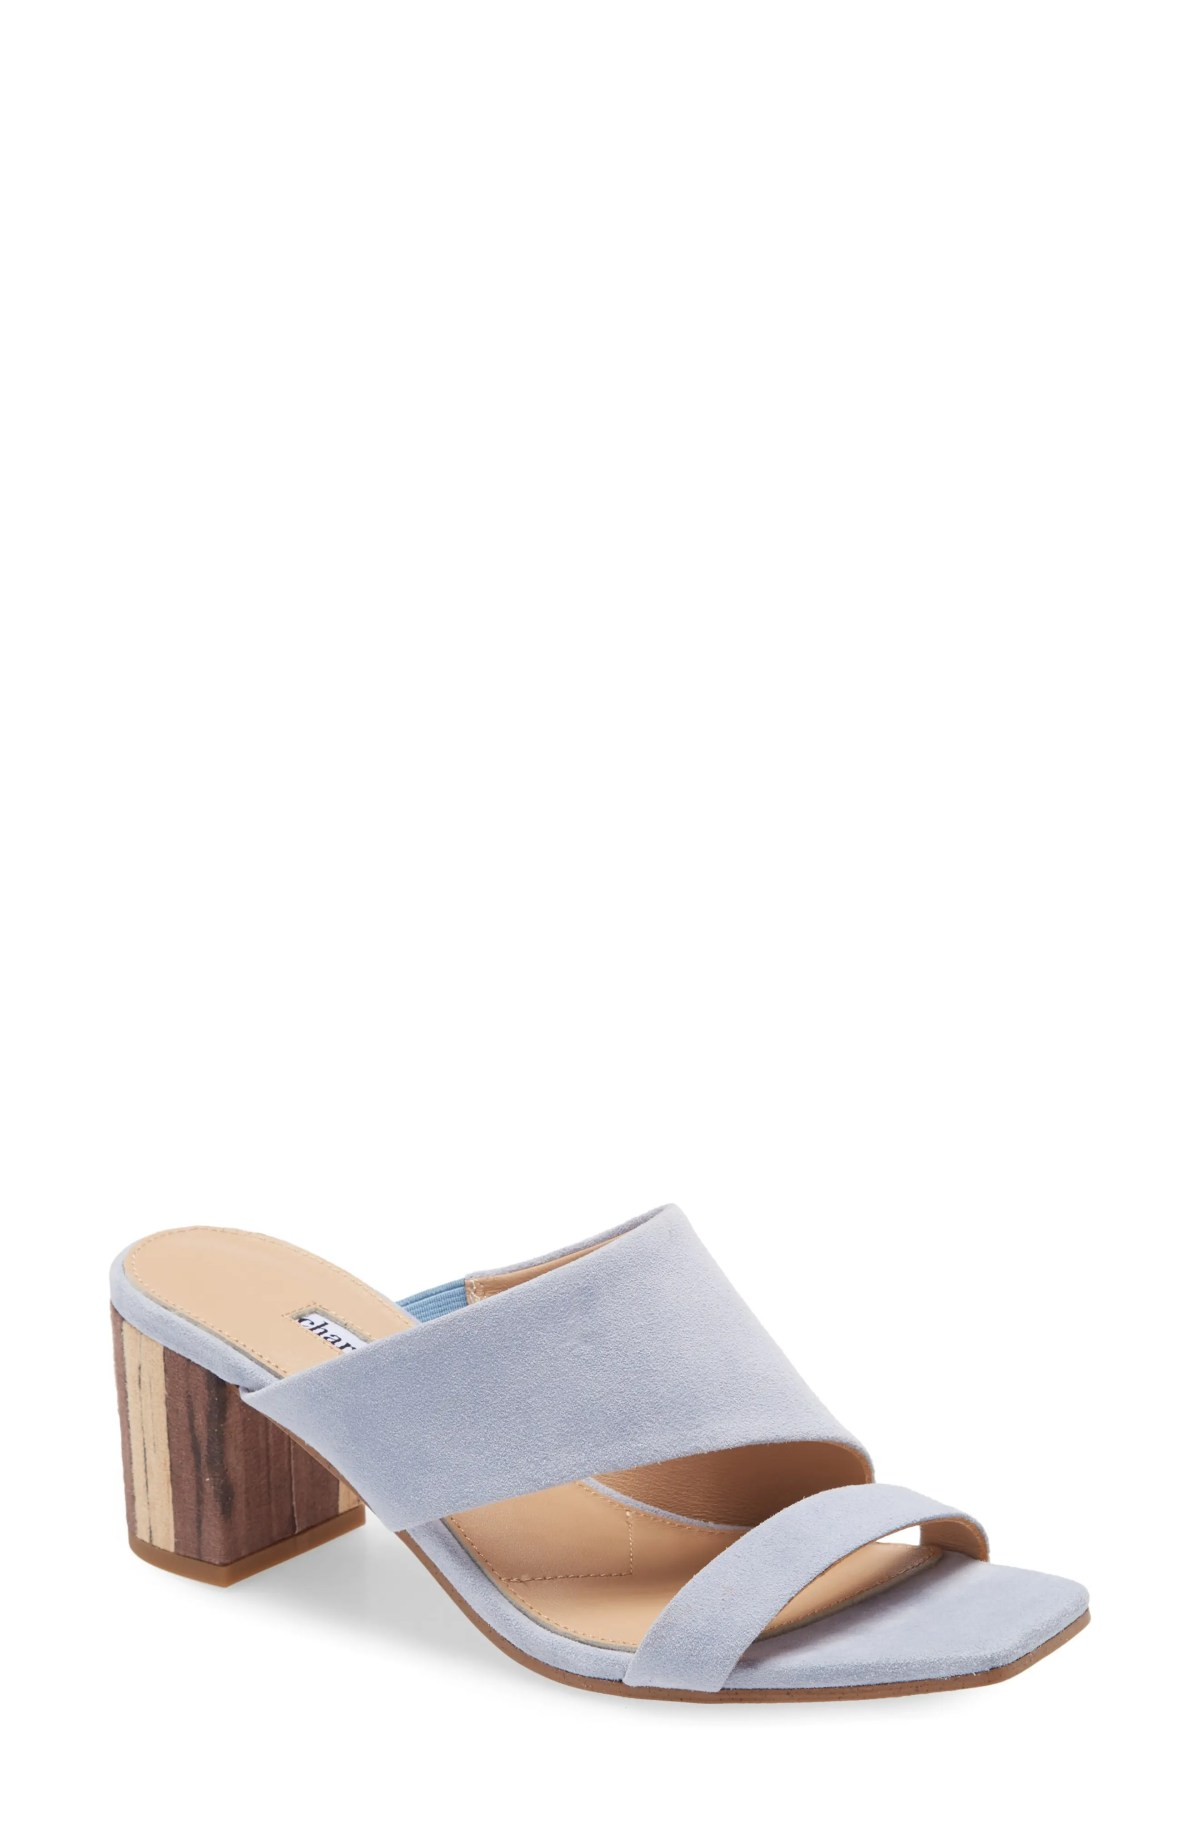 CHARLES DAVID Chello Slide Sandal, Main, color, MUTED MULE SUEDE